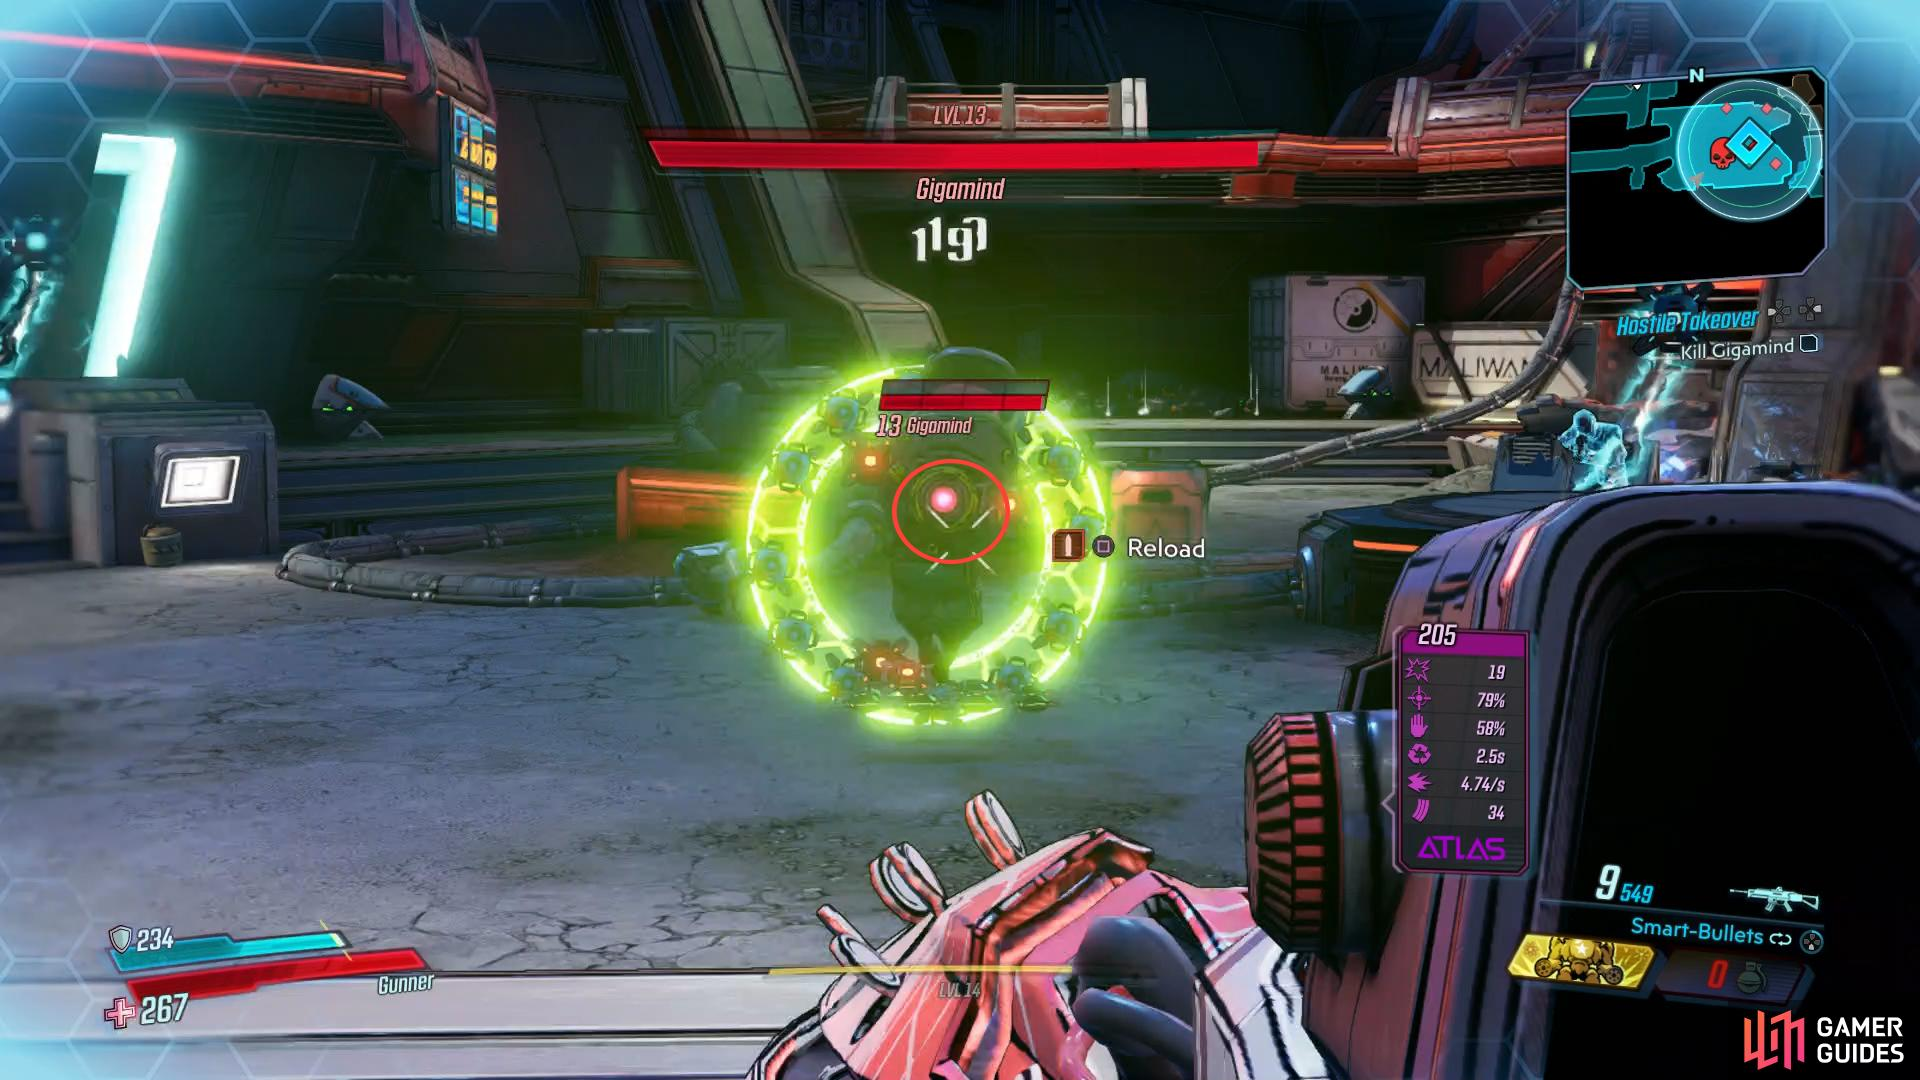 take aim at this pink spot to deal Critical Damage